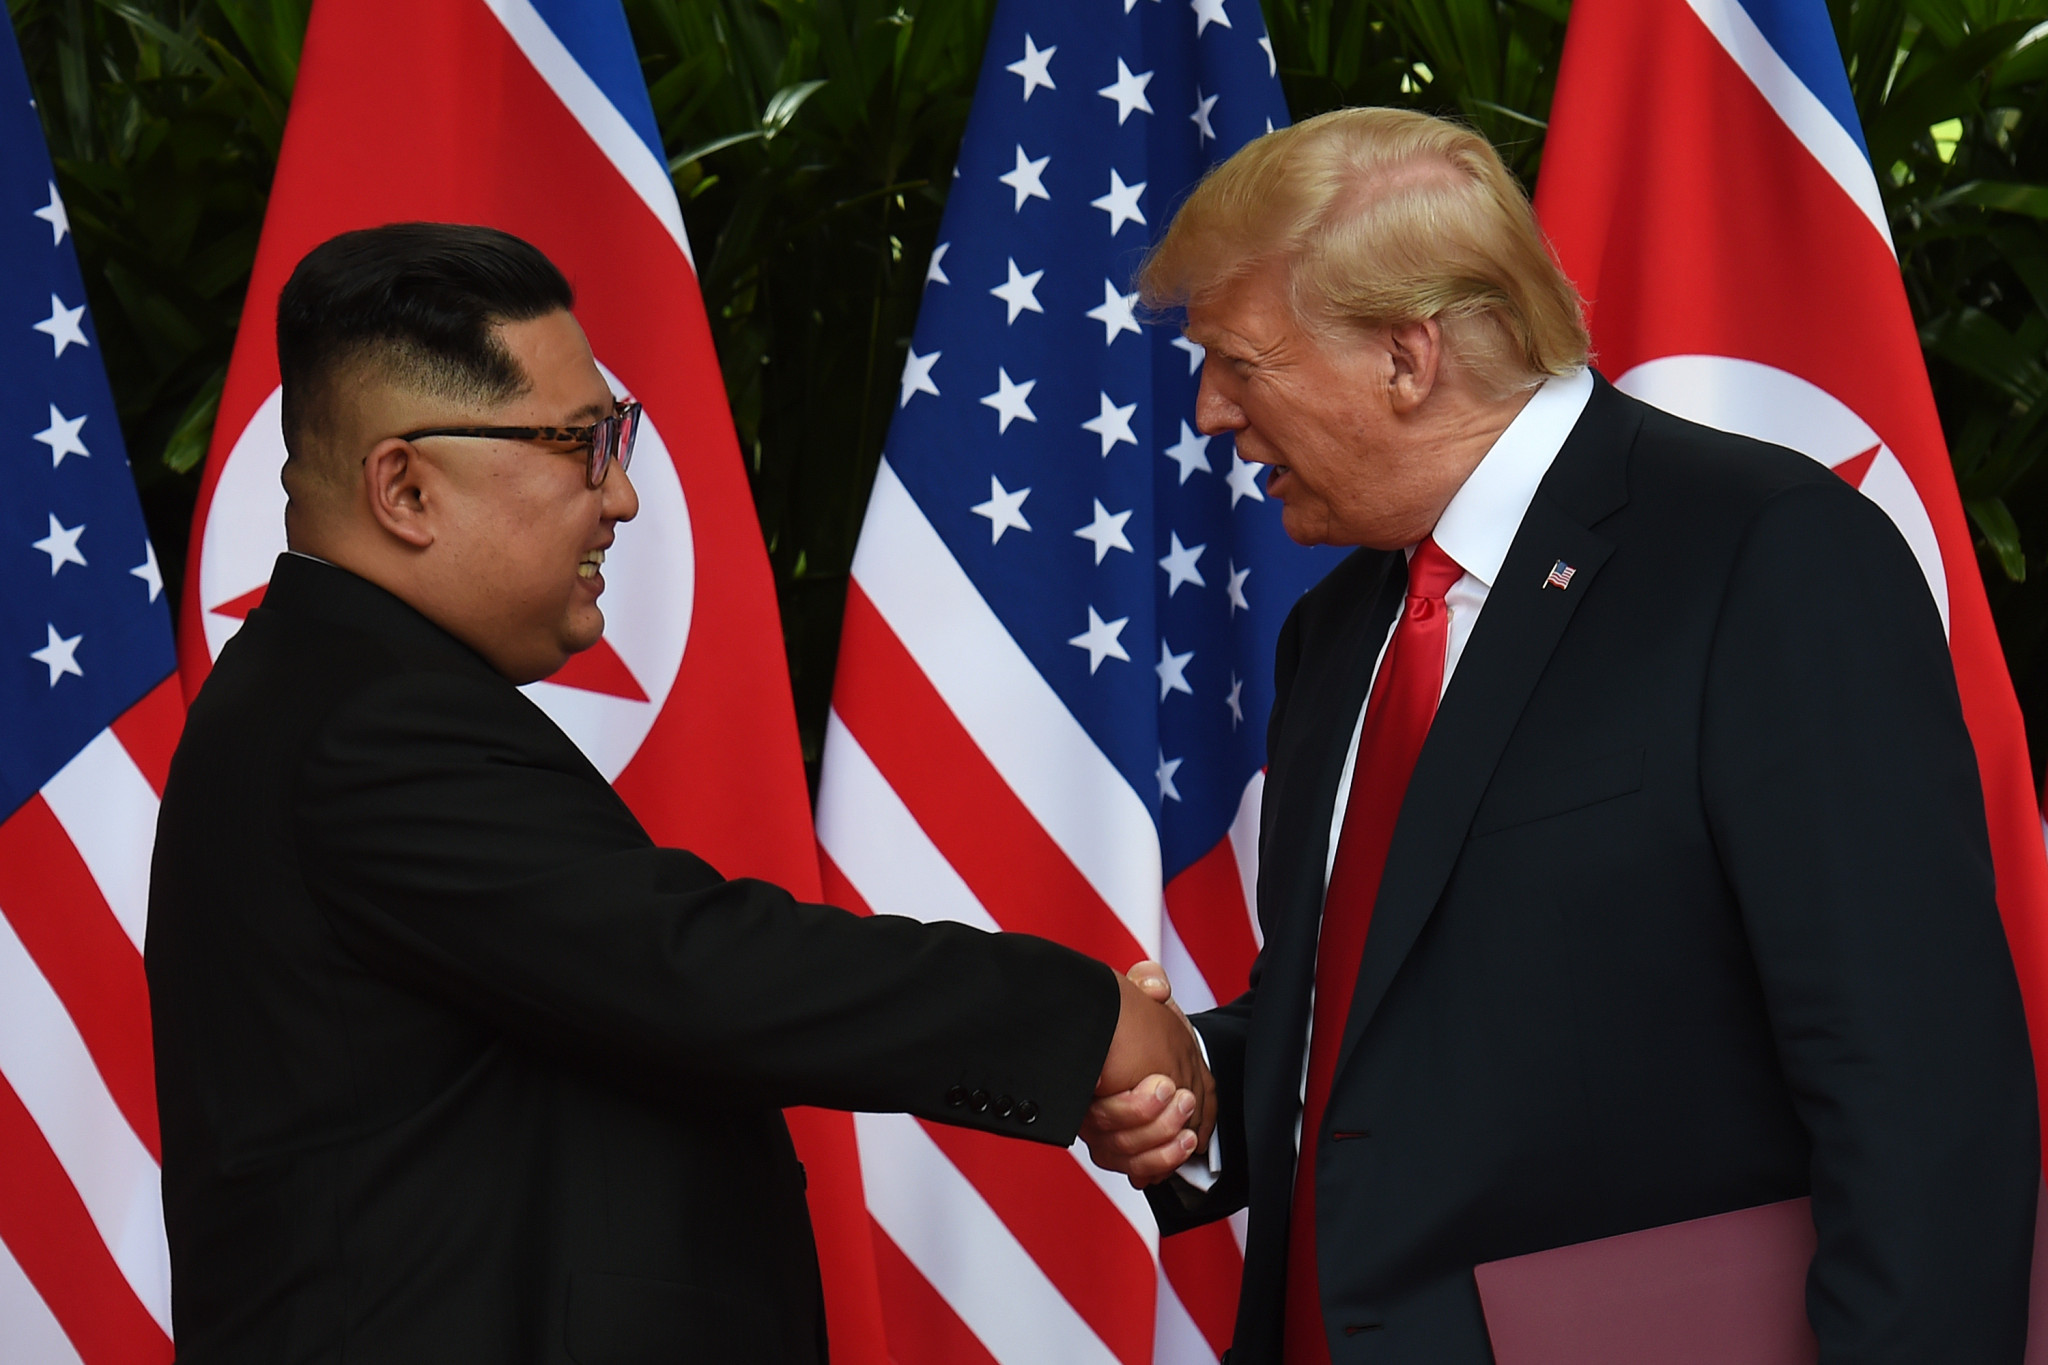 US President Donald Trump and North Korean leader Kim Jong-un held a historic summit in Singapore last month ©Getty Images